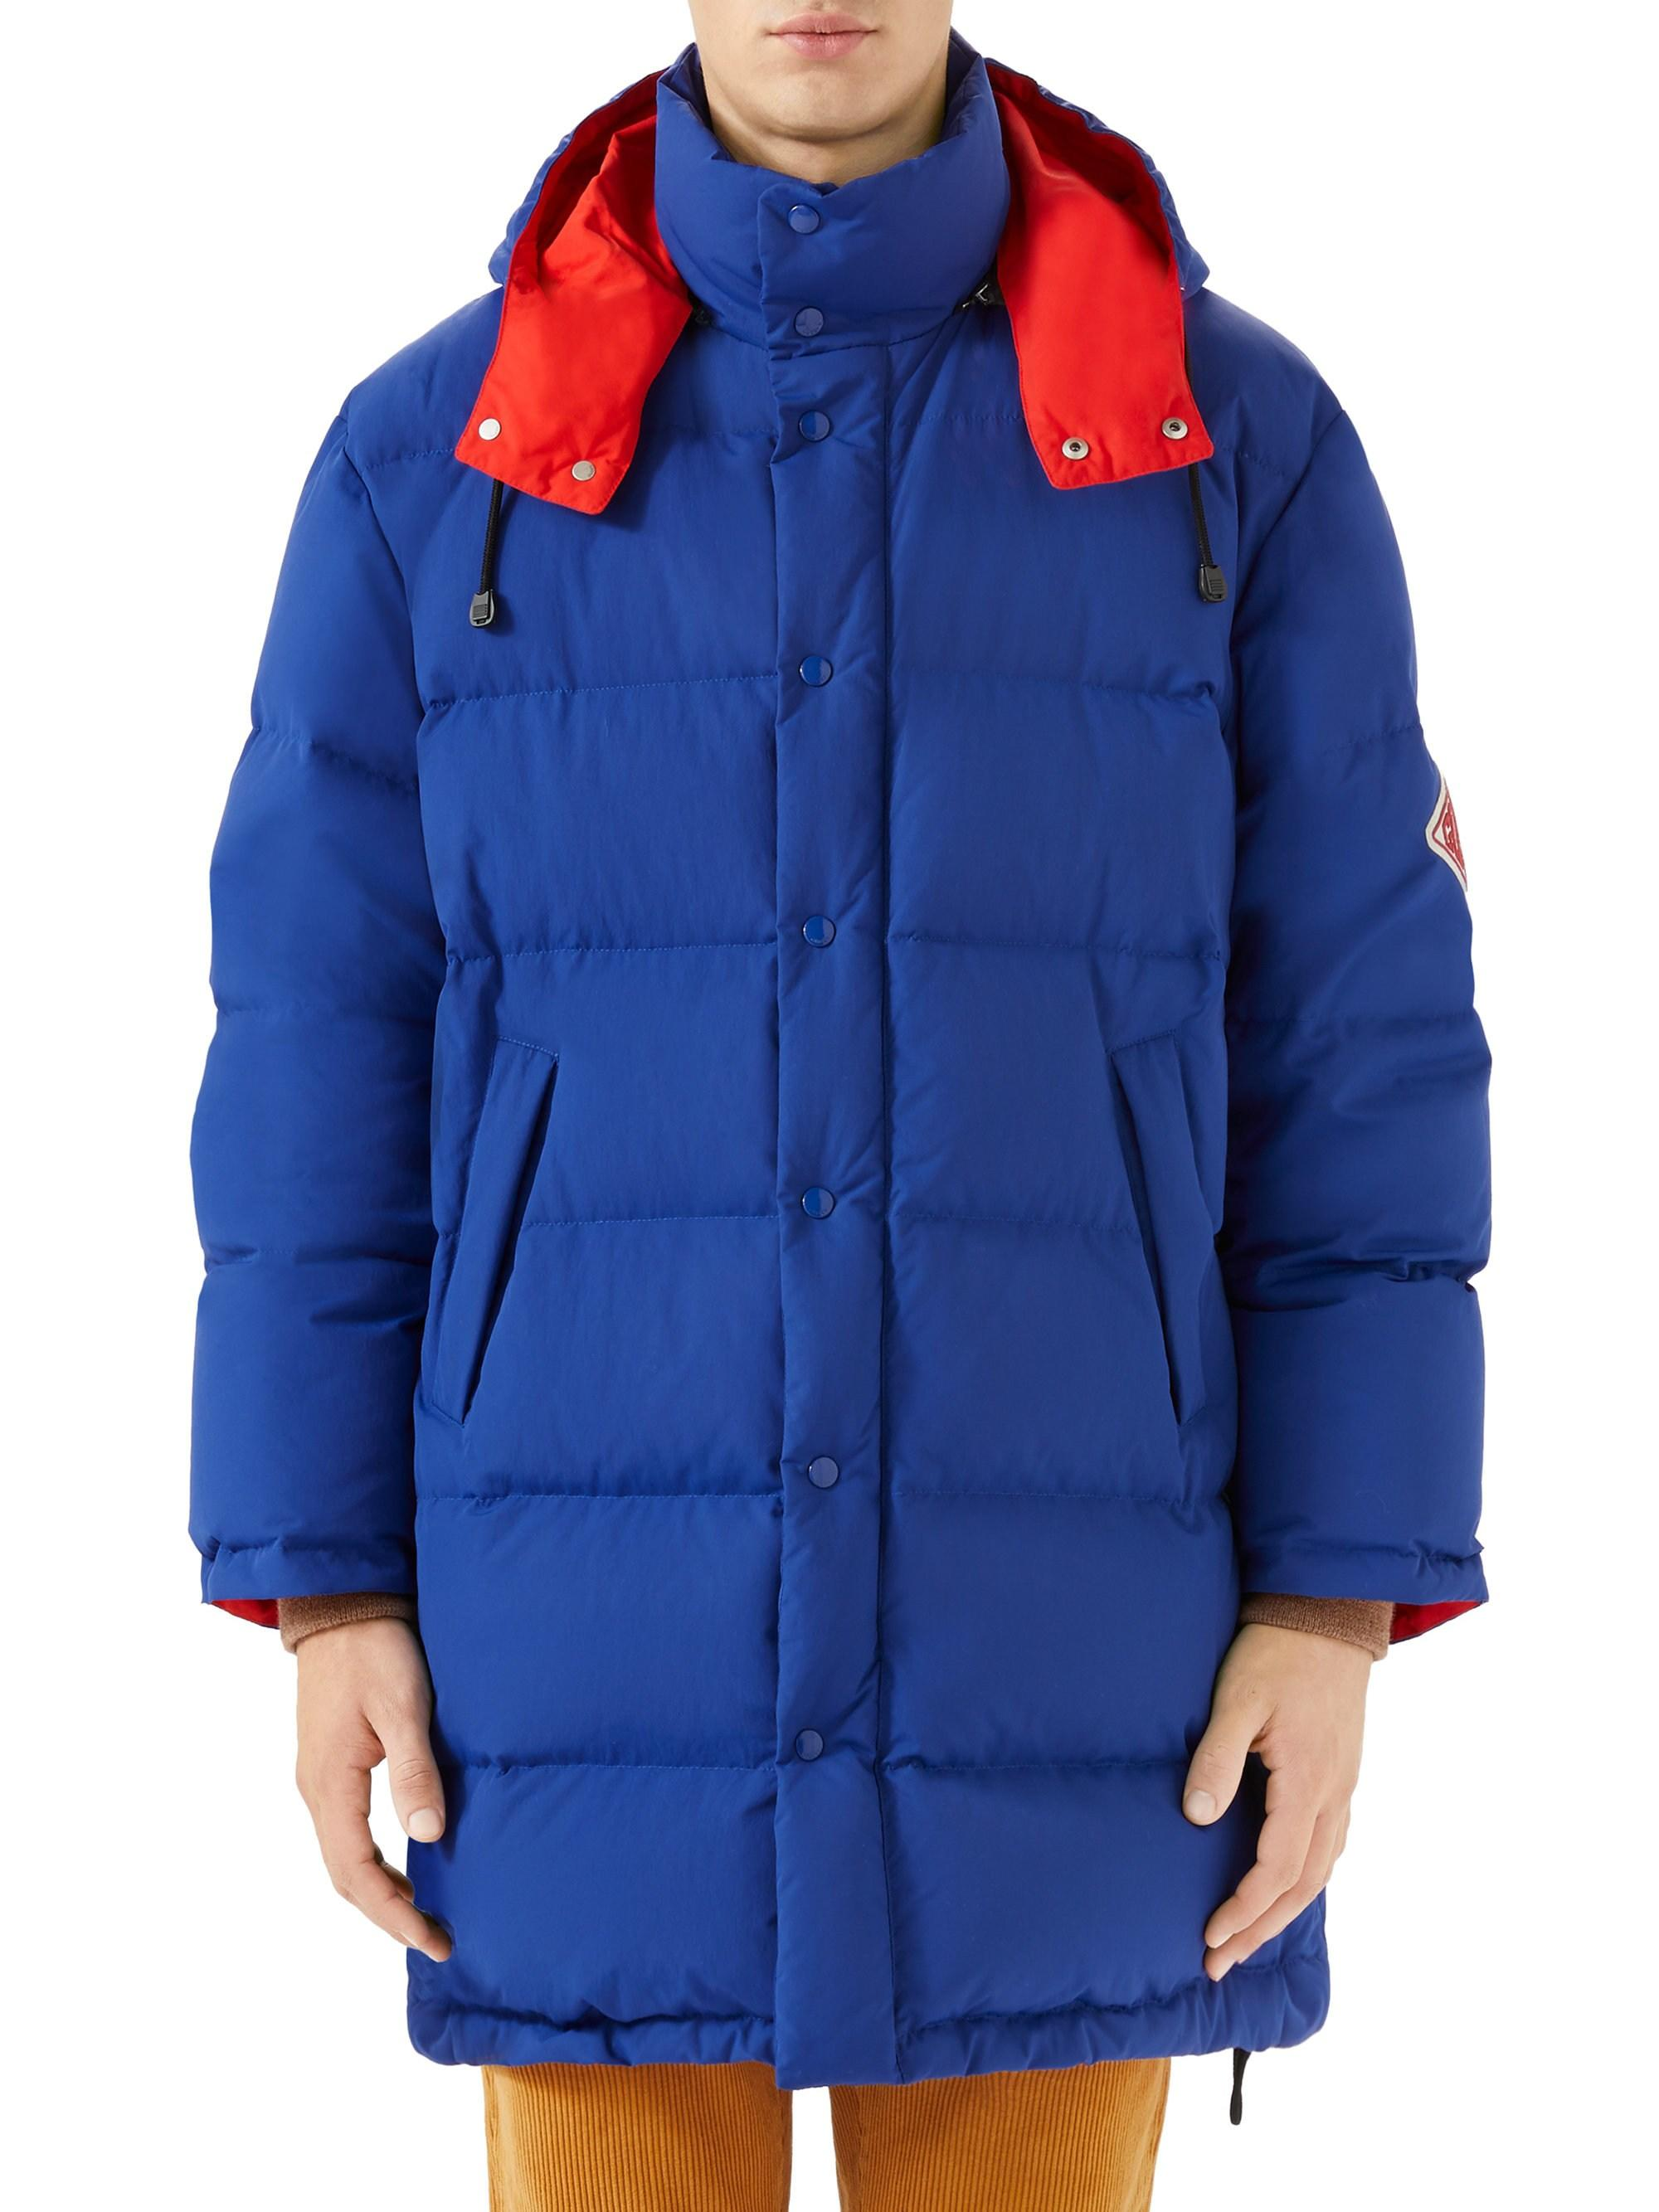 0f90b76fa Gucci Men's Nylon Puffer Jacket - Blueprint Candy Red in Blue for ...